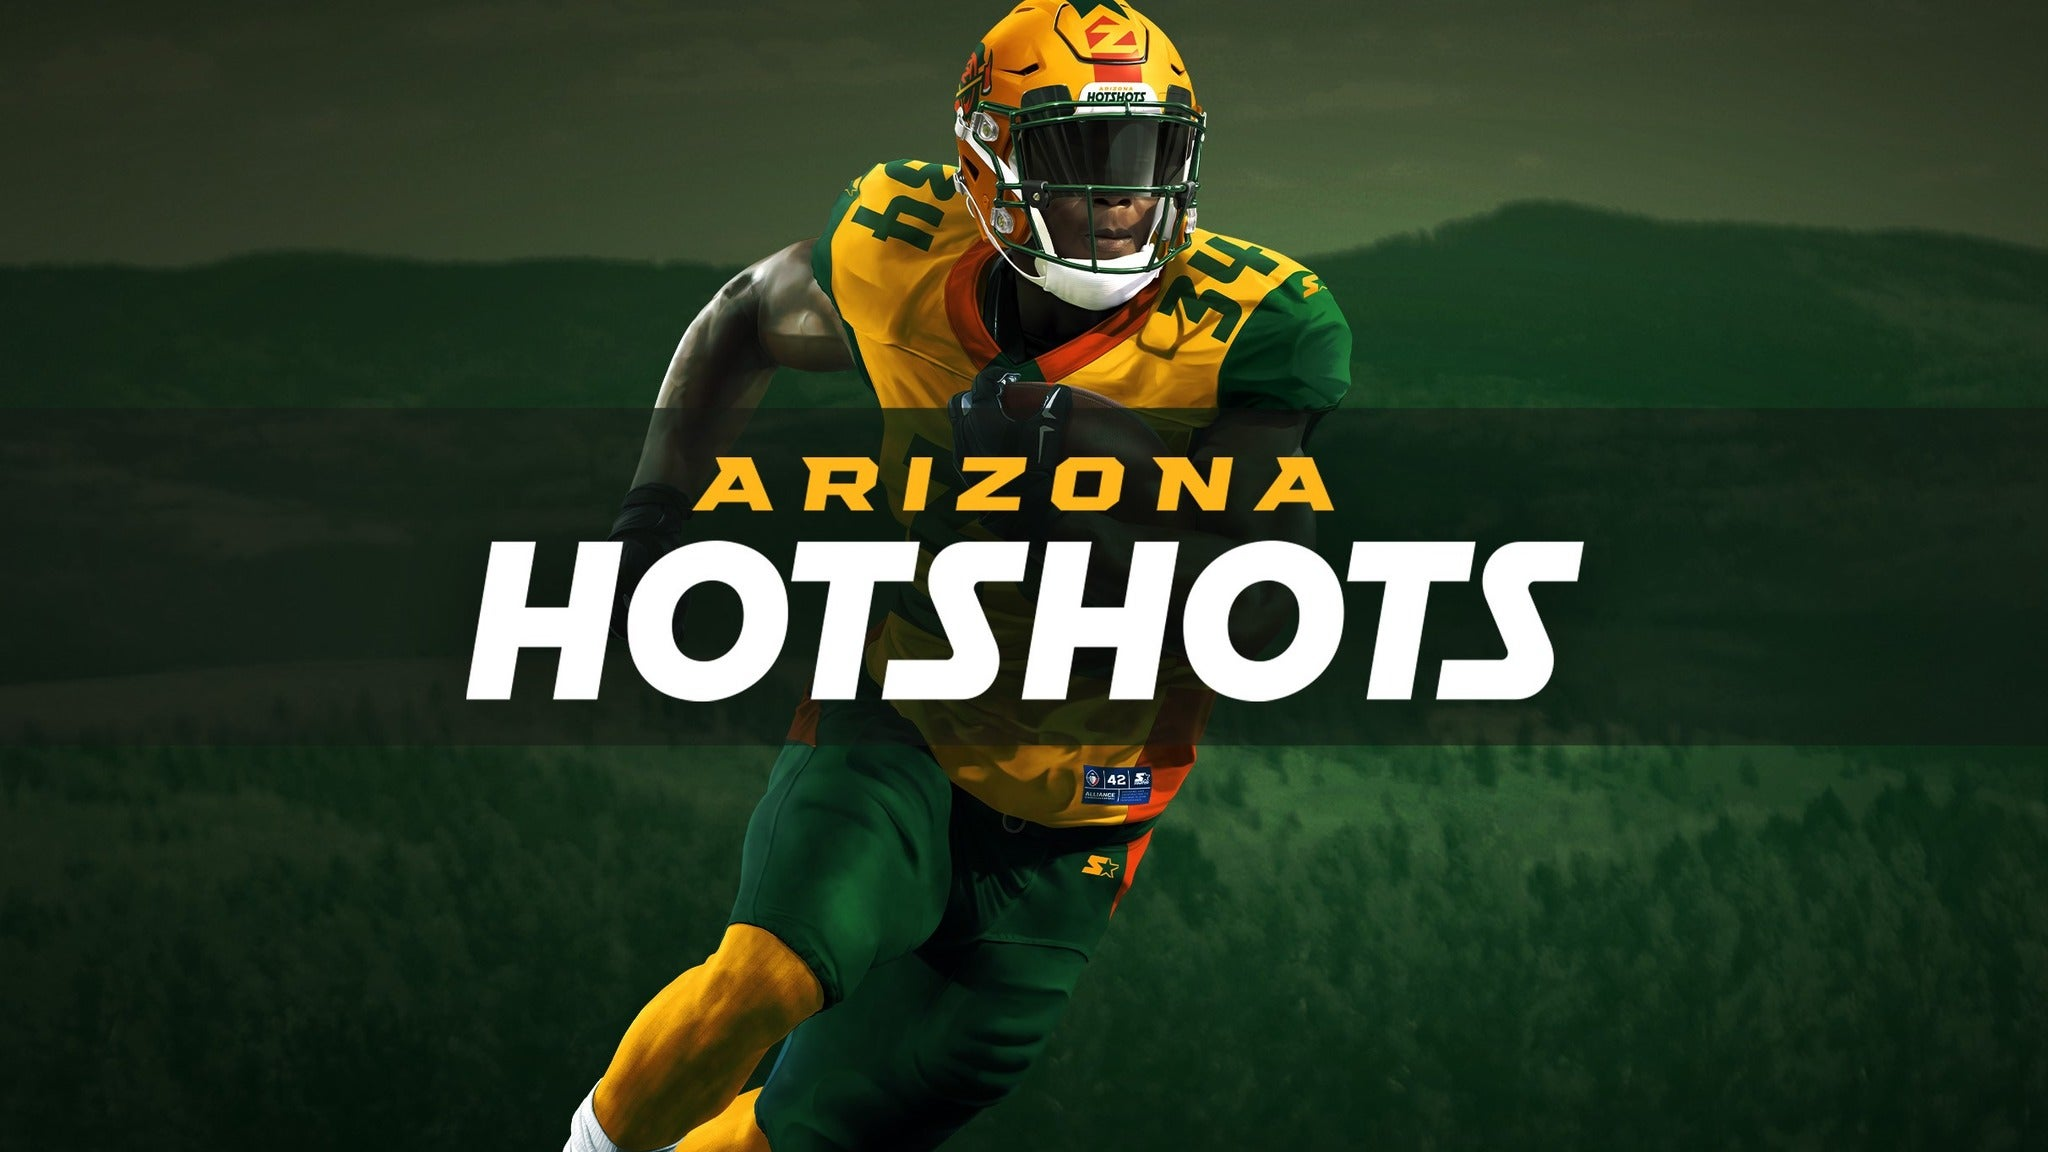 Arizona Hotshots vs. Atlanta Legends at Sun Devil Stadium